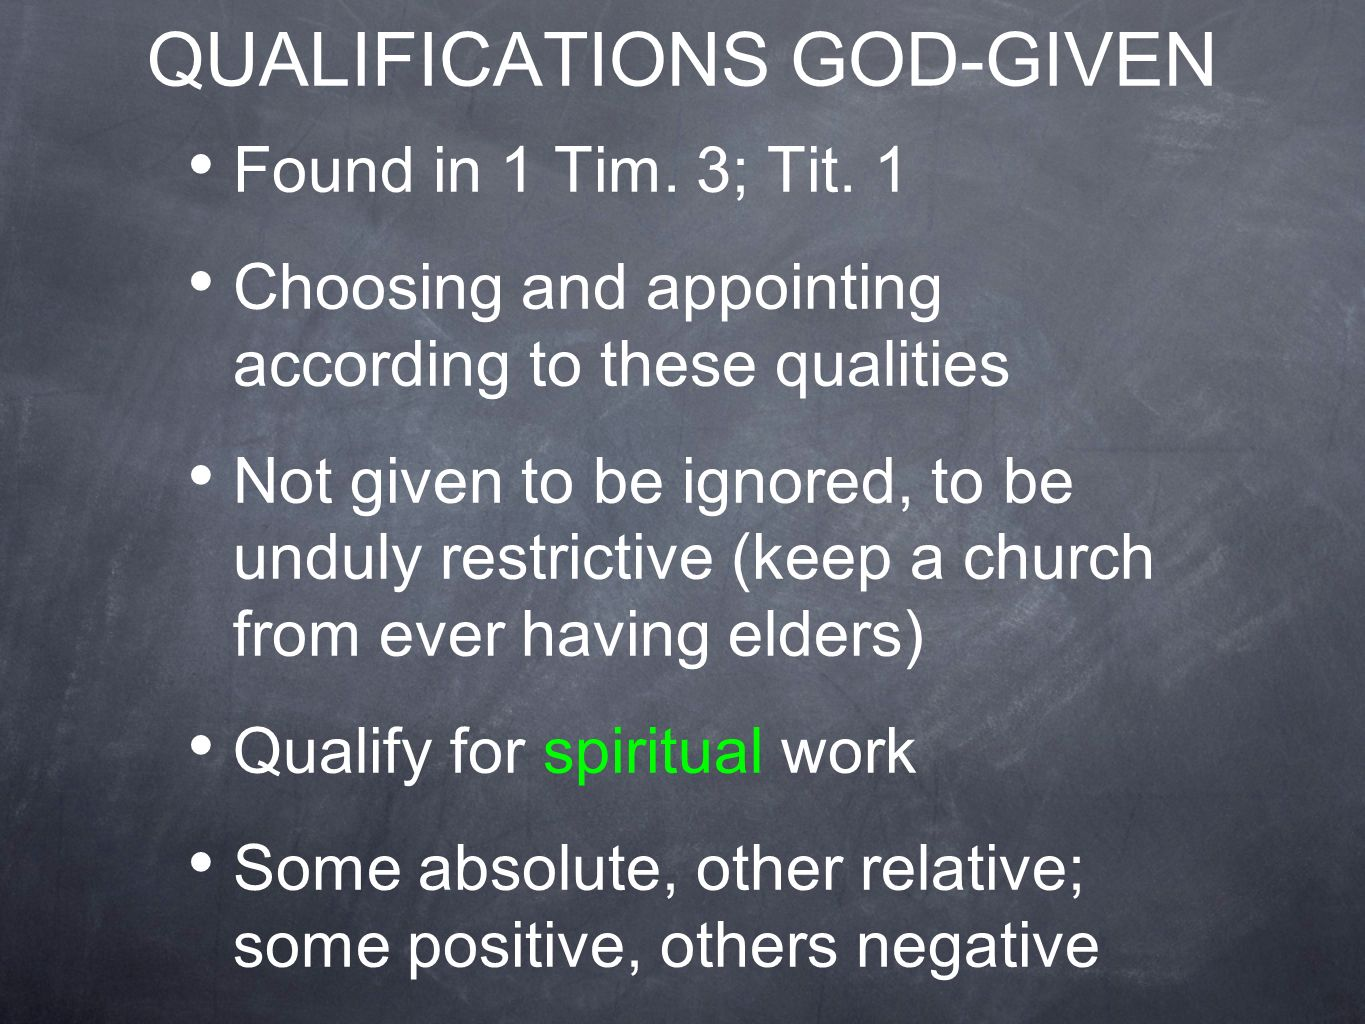 QUALIFICATIONS GOD-GIVEN Found in 1 Tim. 3; Tit.